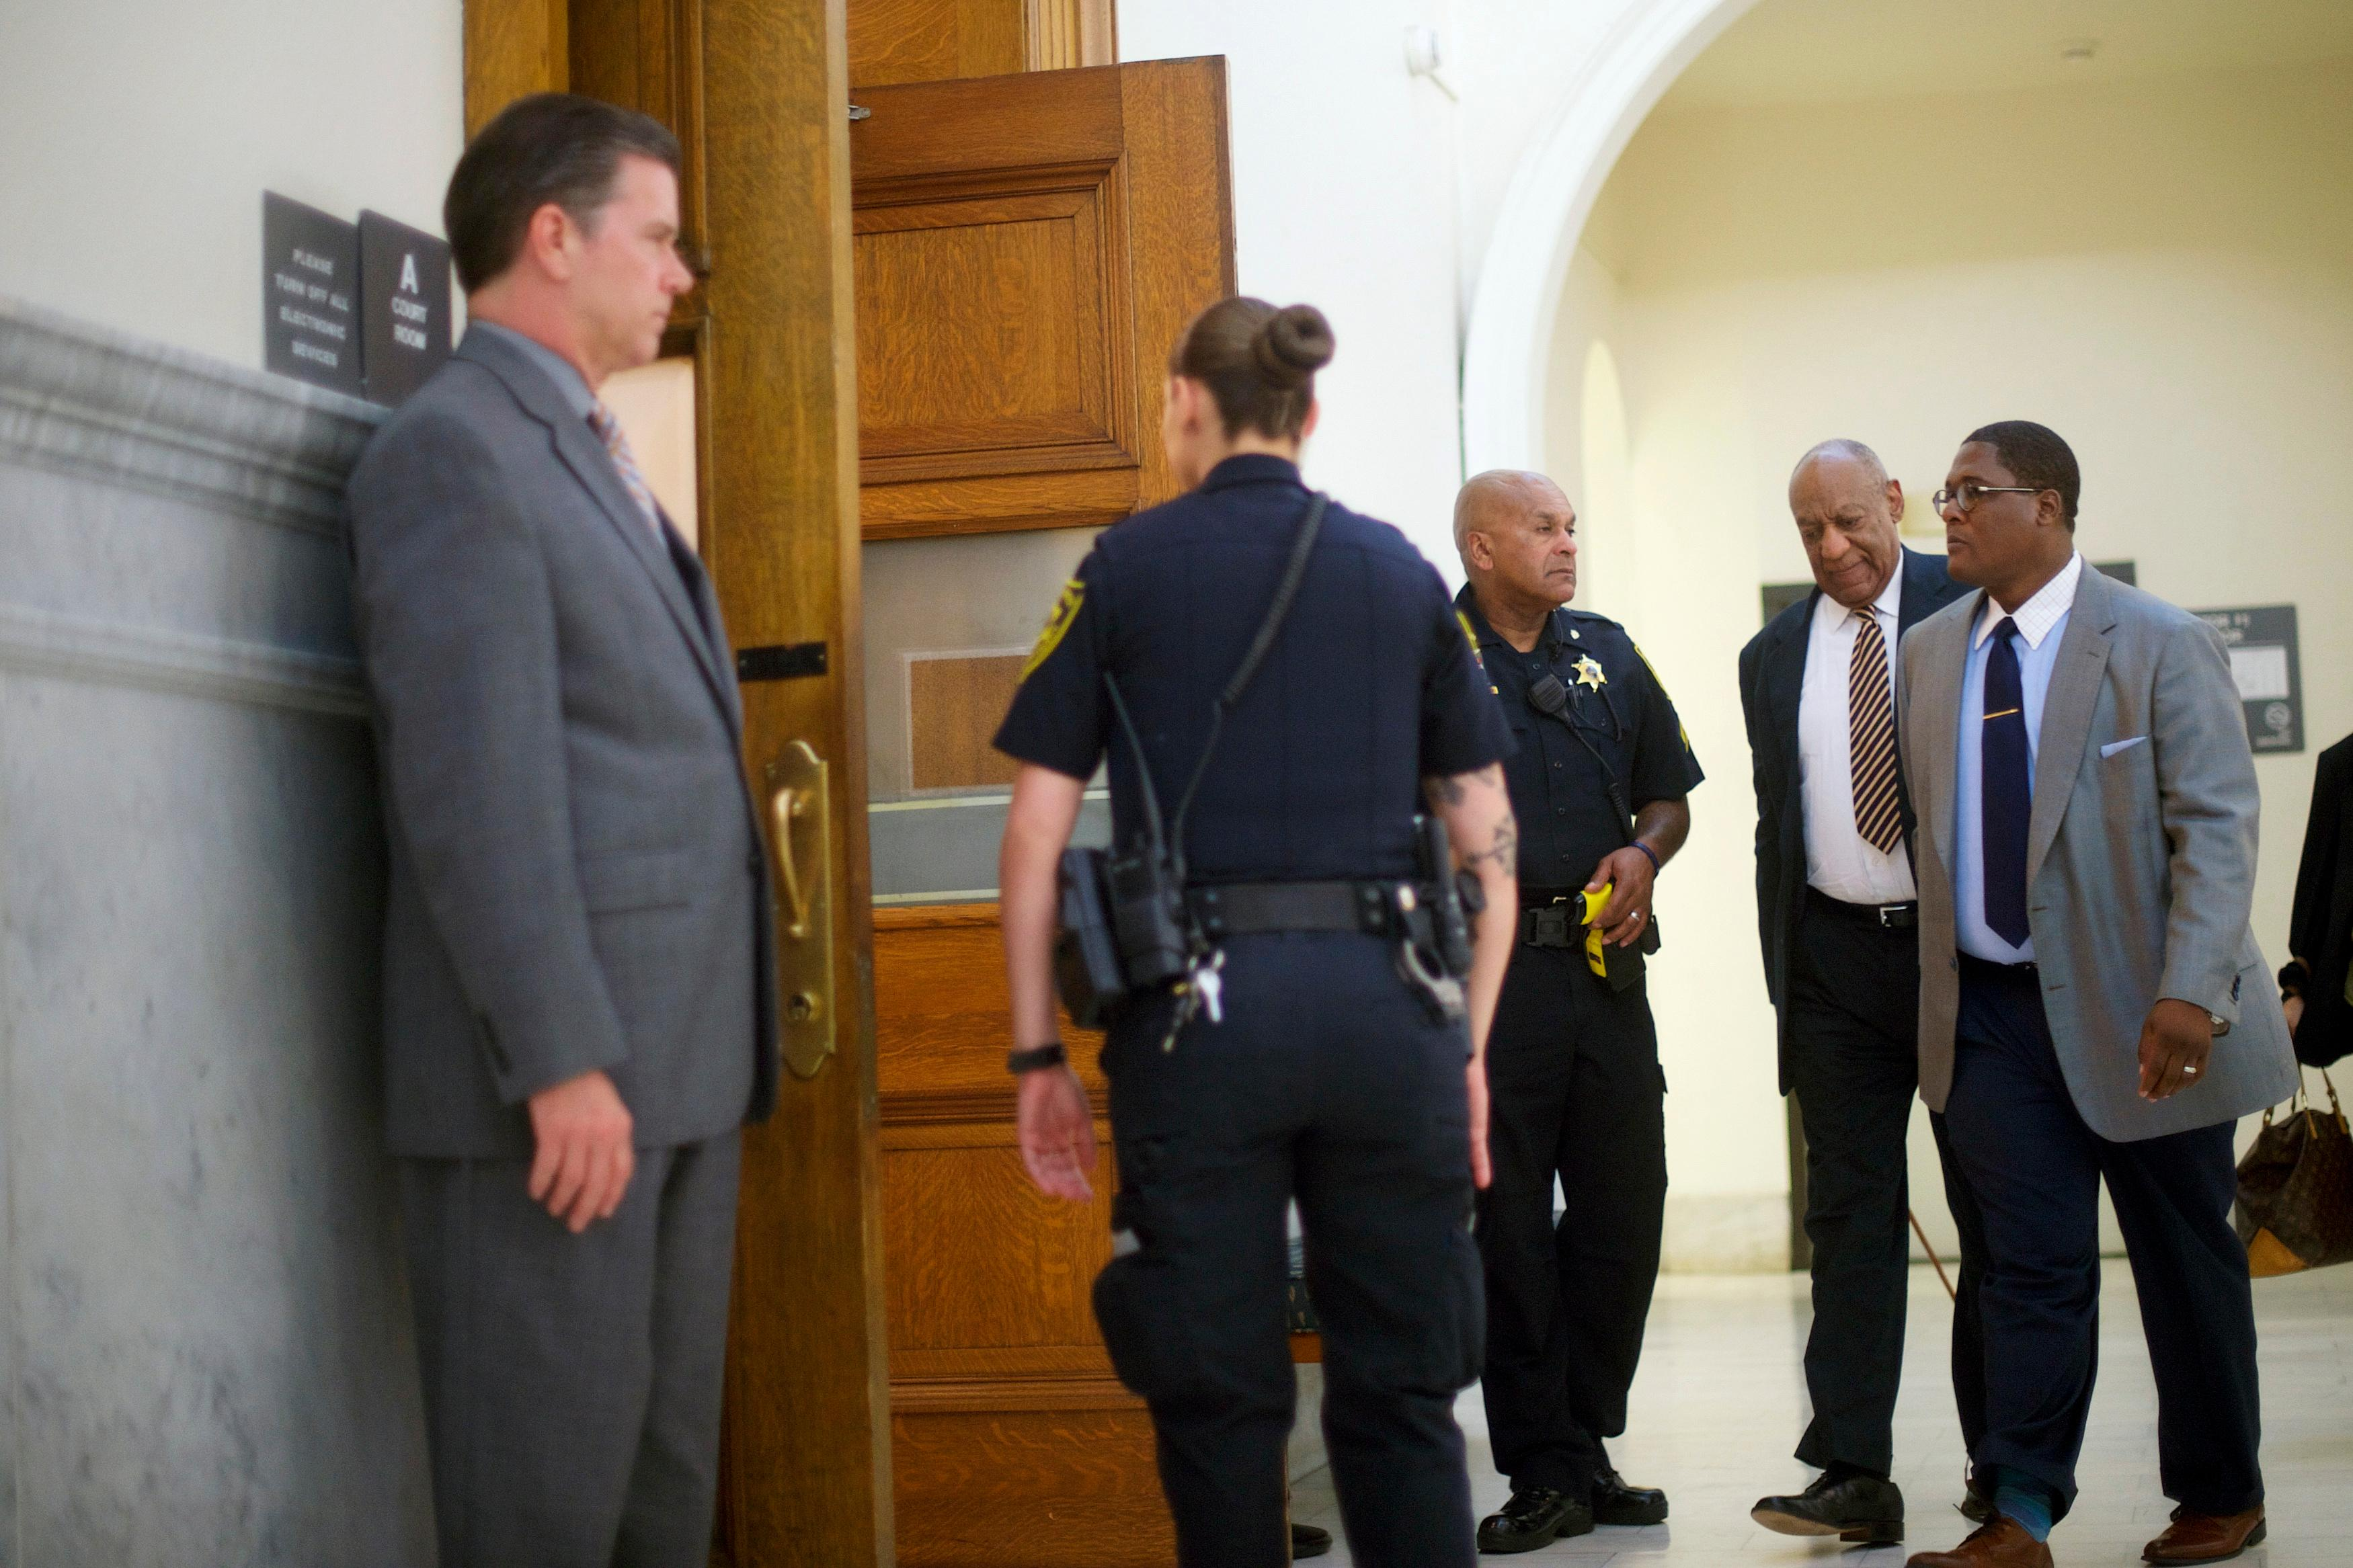 Bill Cosby enters the courtroom during his sexual assault trial at the Montgomery County Courthouse in Norristown, Pa., Wednesday, June 14, 2017. (Mark Makela/Pool Photo via AP)